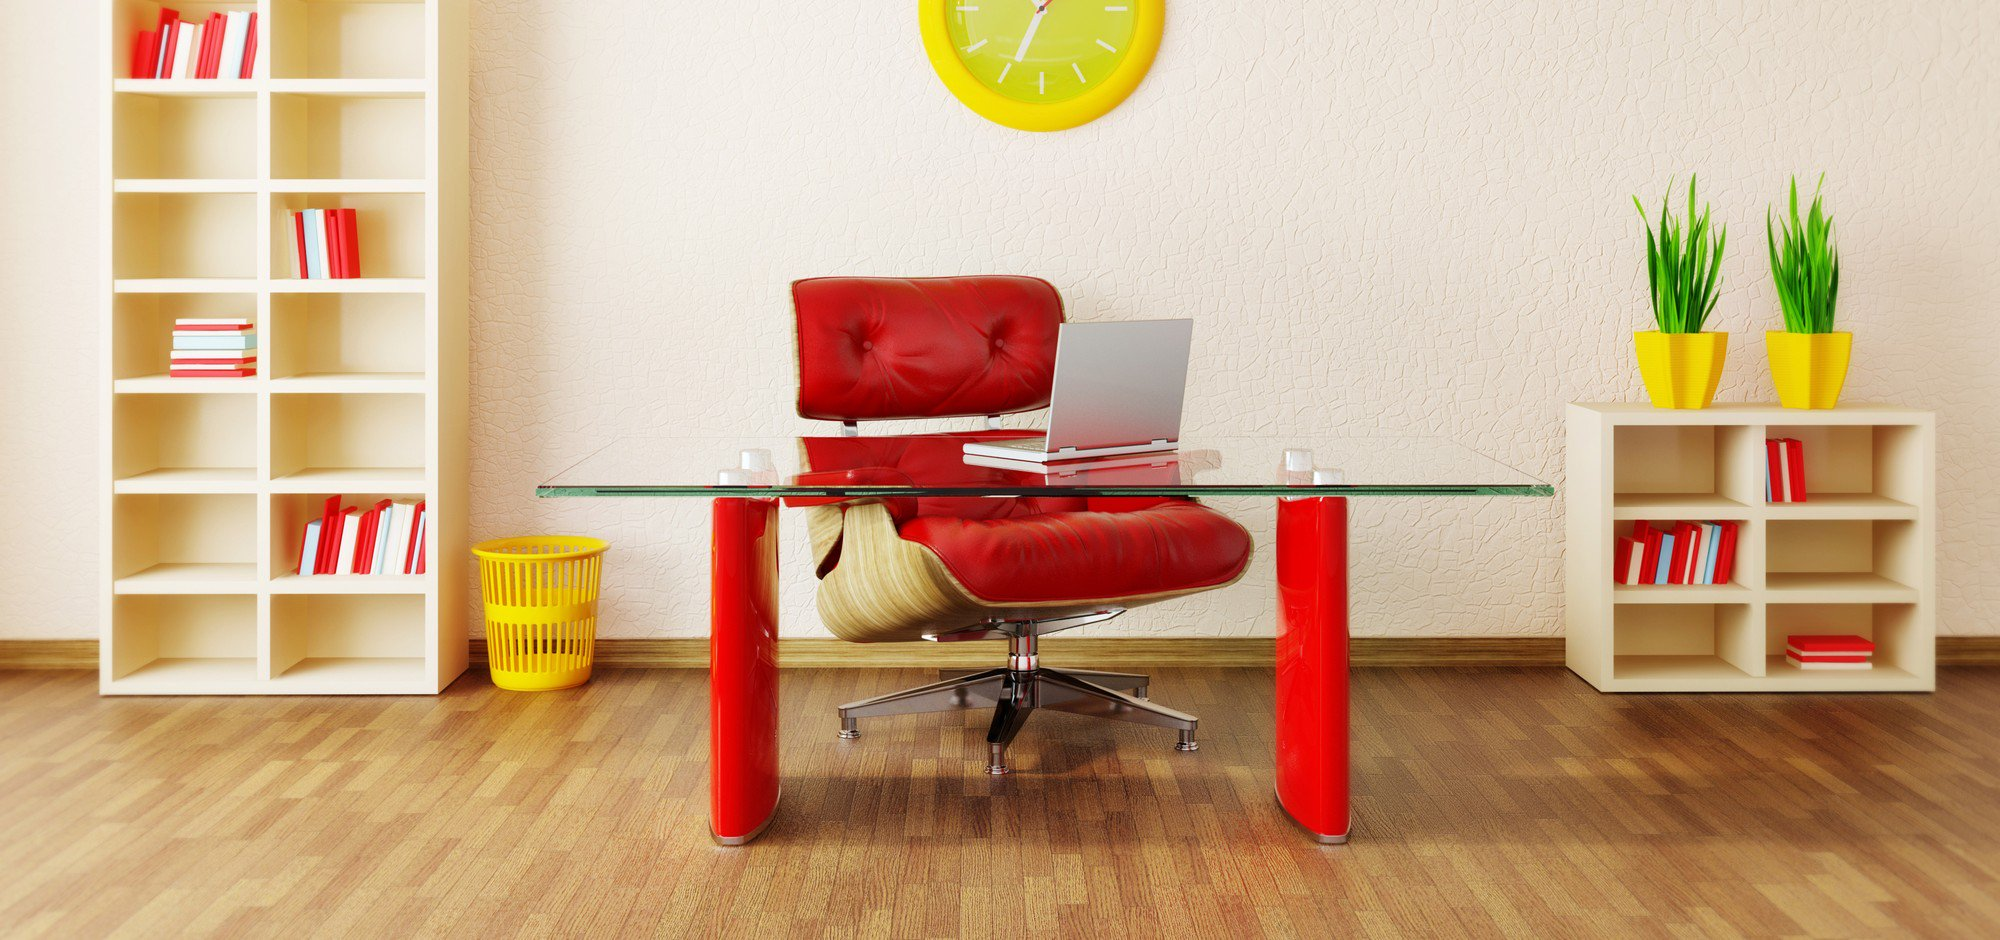 improve-your-office-day-e1443948194430